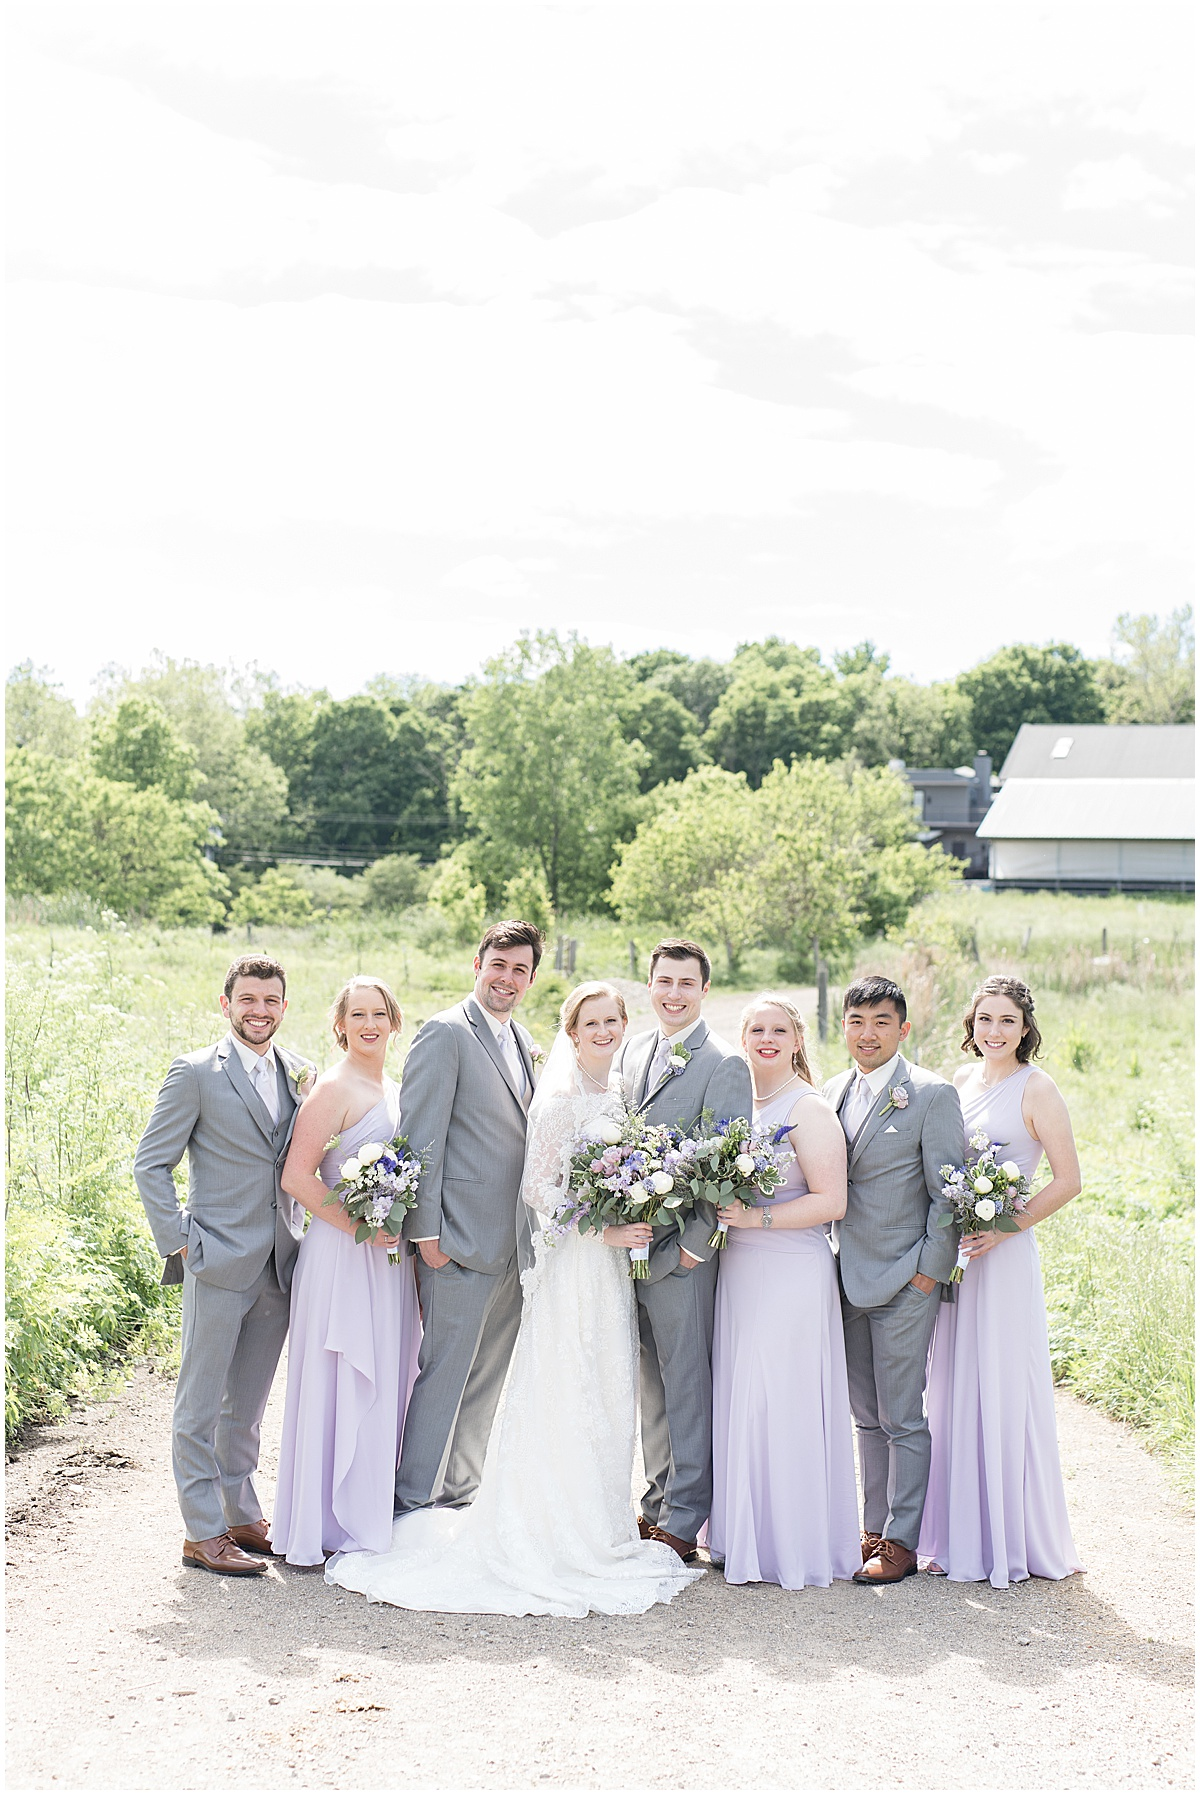 Wedding party portrait at Traders Point Creamery wedding in Zionsville, Indiana